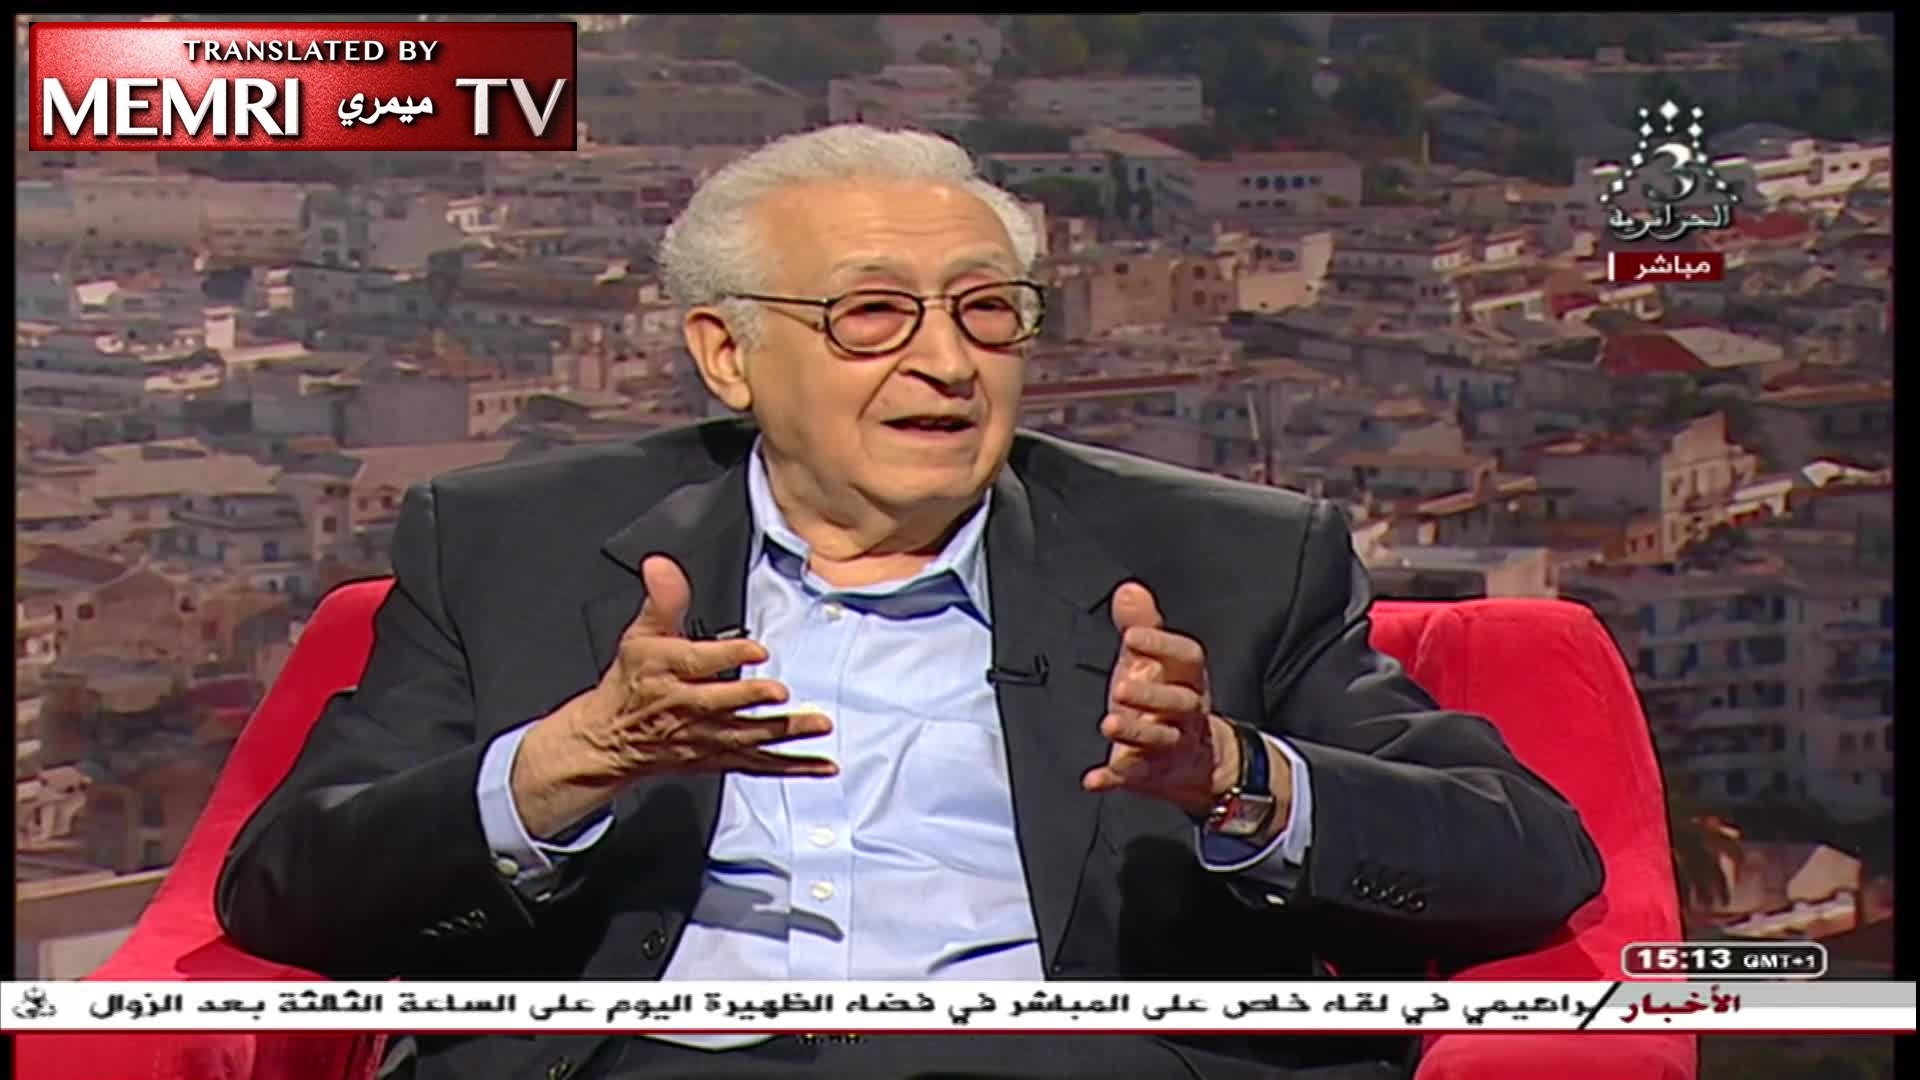 Algerian Diplomat Lakhdar Brahimi Warns: We Should Avoid Rushing into Elections So We Don't End Up Like Iraq or Libya